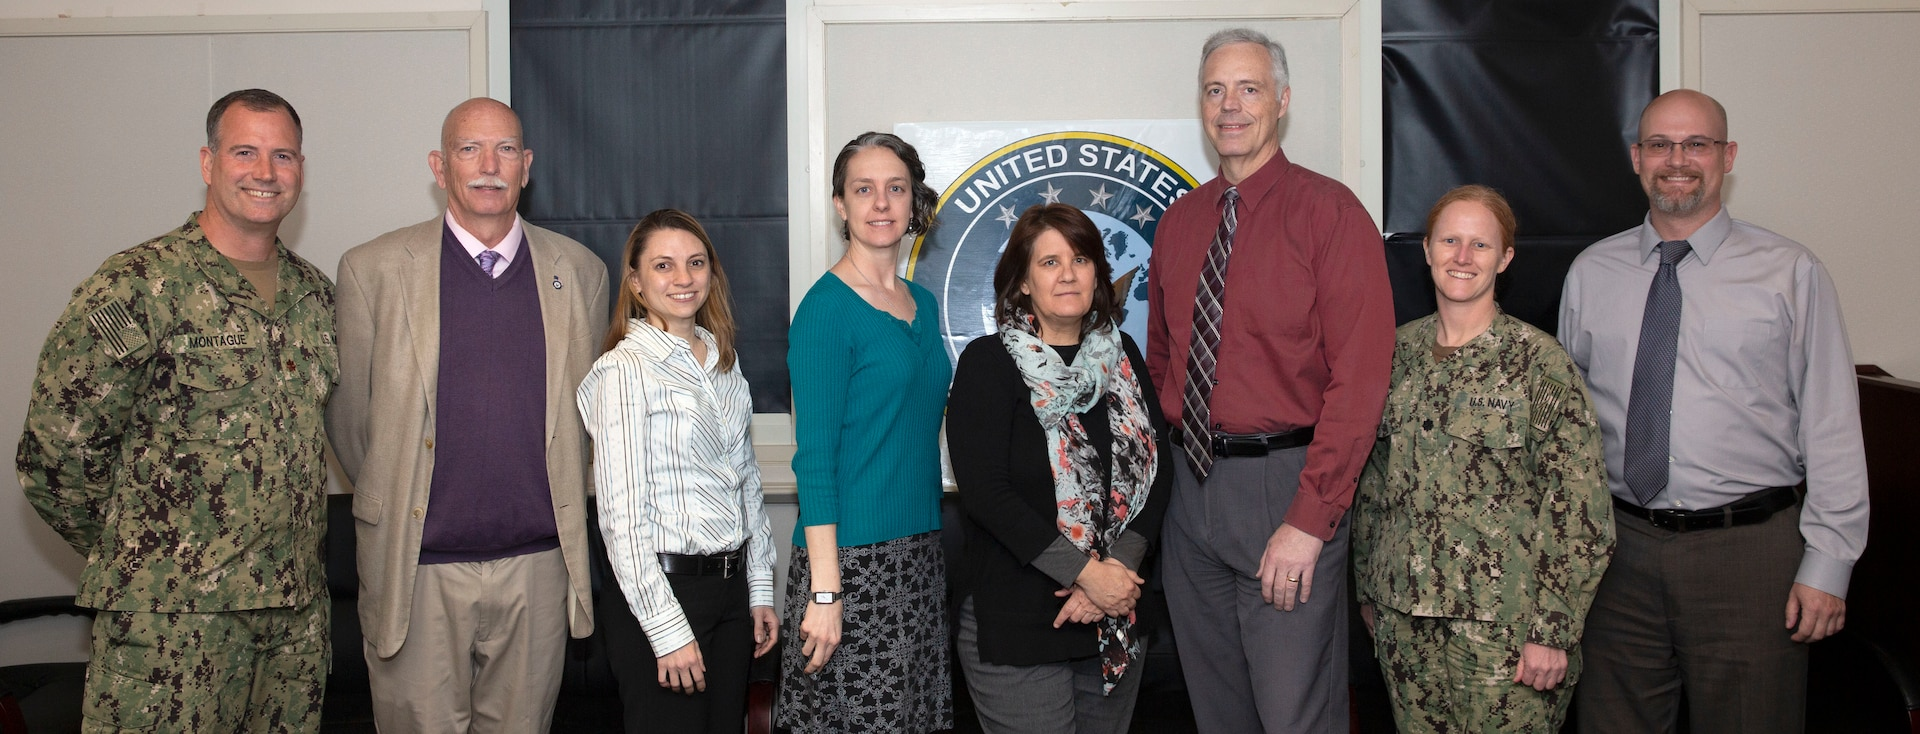 USFFC Staff pose for a group photo after receiving a 2019 Secretary of the Navy Environmental Award for environmental planning of the AFTT Study Area Phase III Environmental Impact Statement.